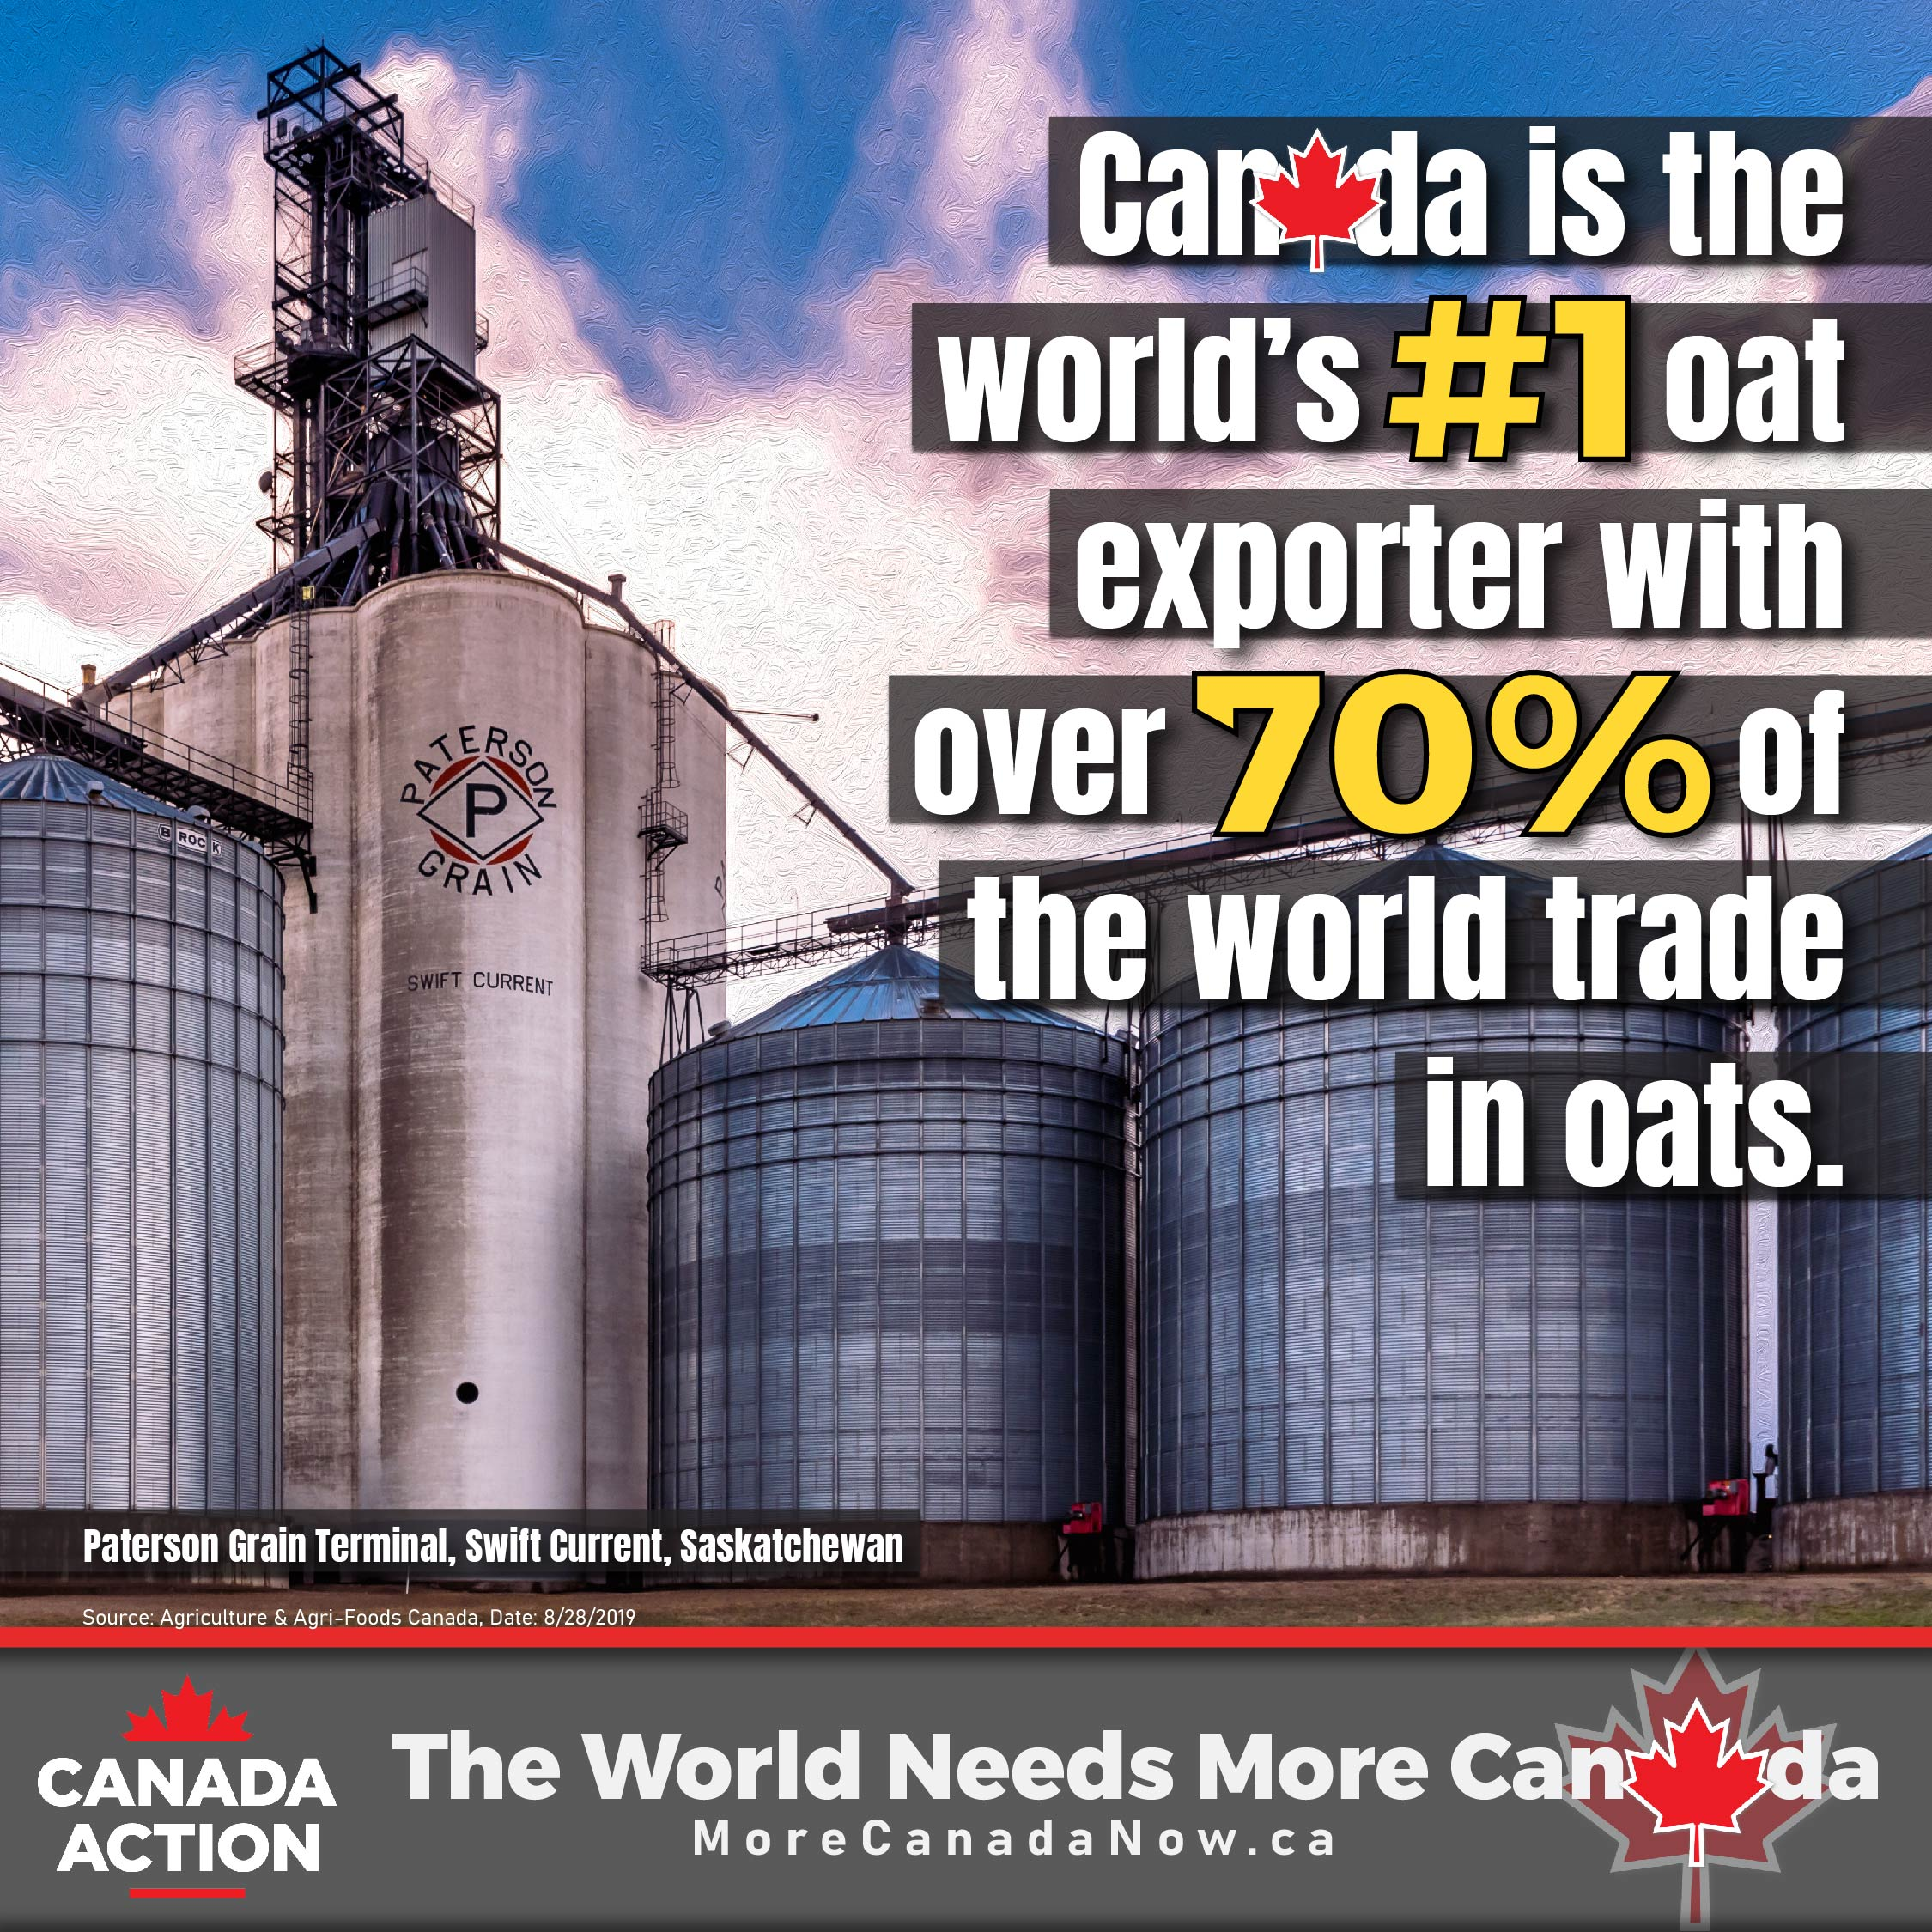 oat farming canada - #1 exporter of oats globally